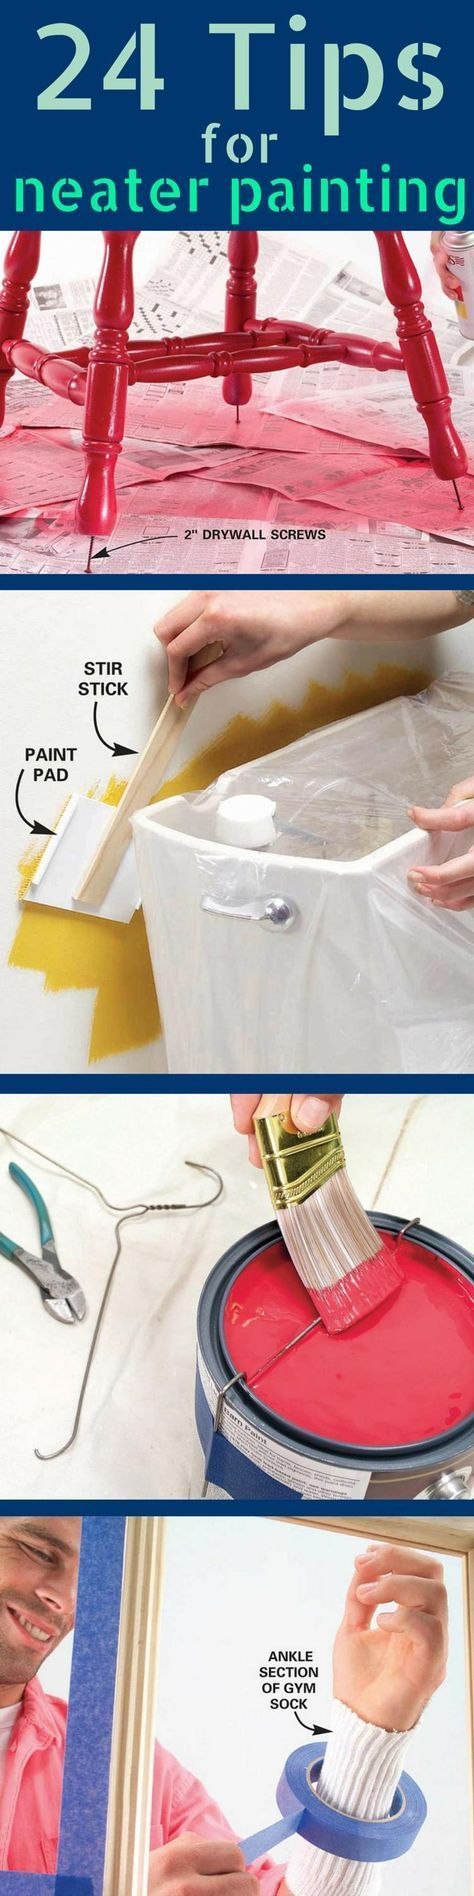 Paint a Room Without Making a Mess! Protect against spills, splatters and other disasters with these 24 painting tips. http://www.familyhandyman.com/painting/tips/paint-job-tips-neater-painting